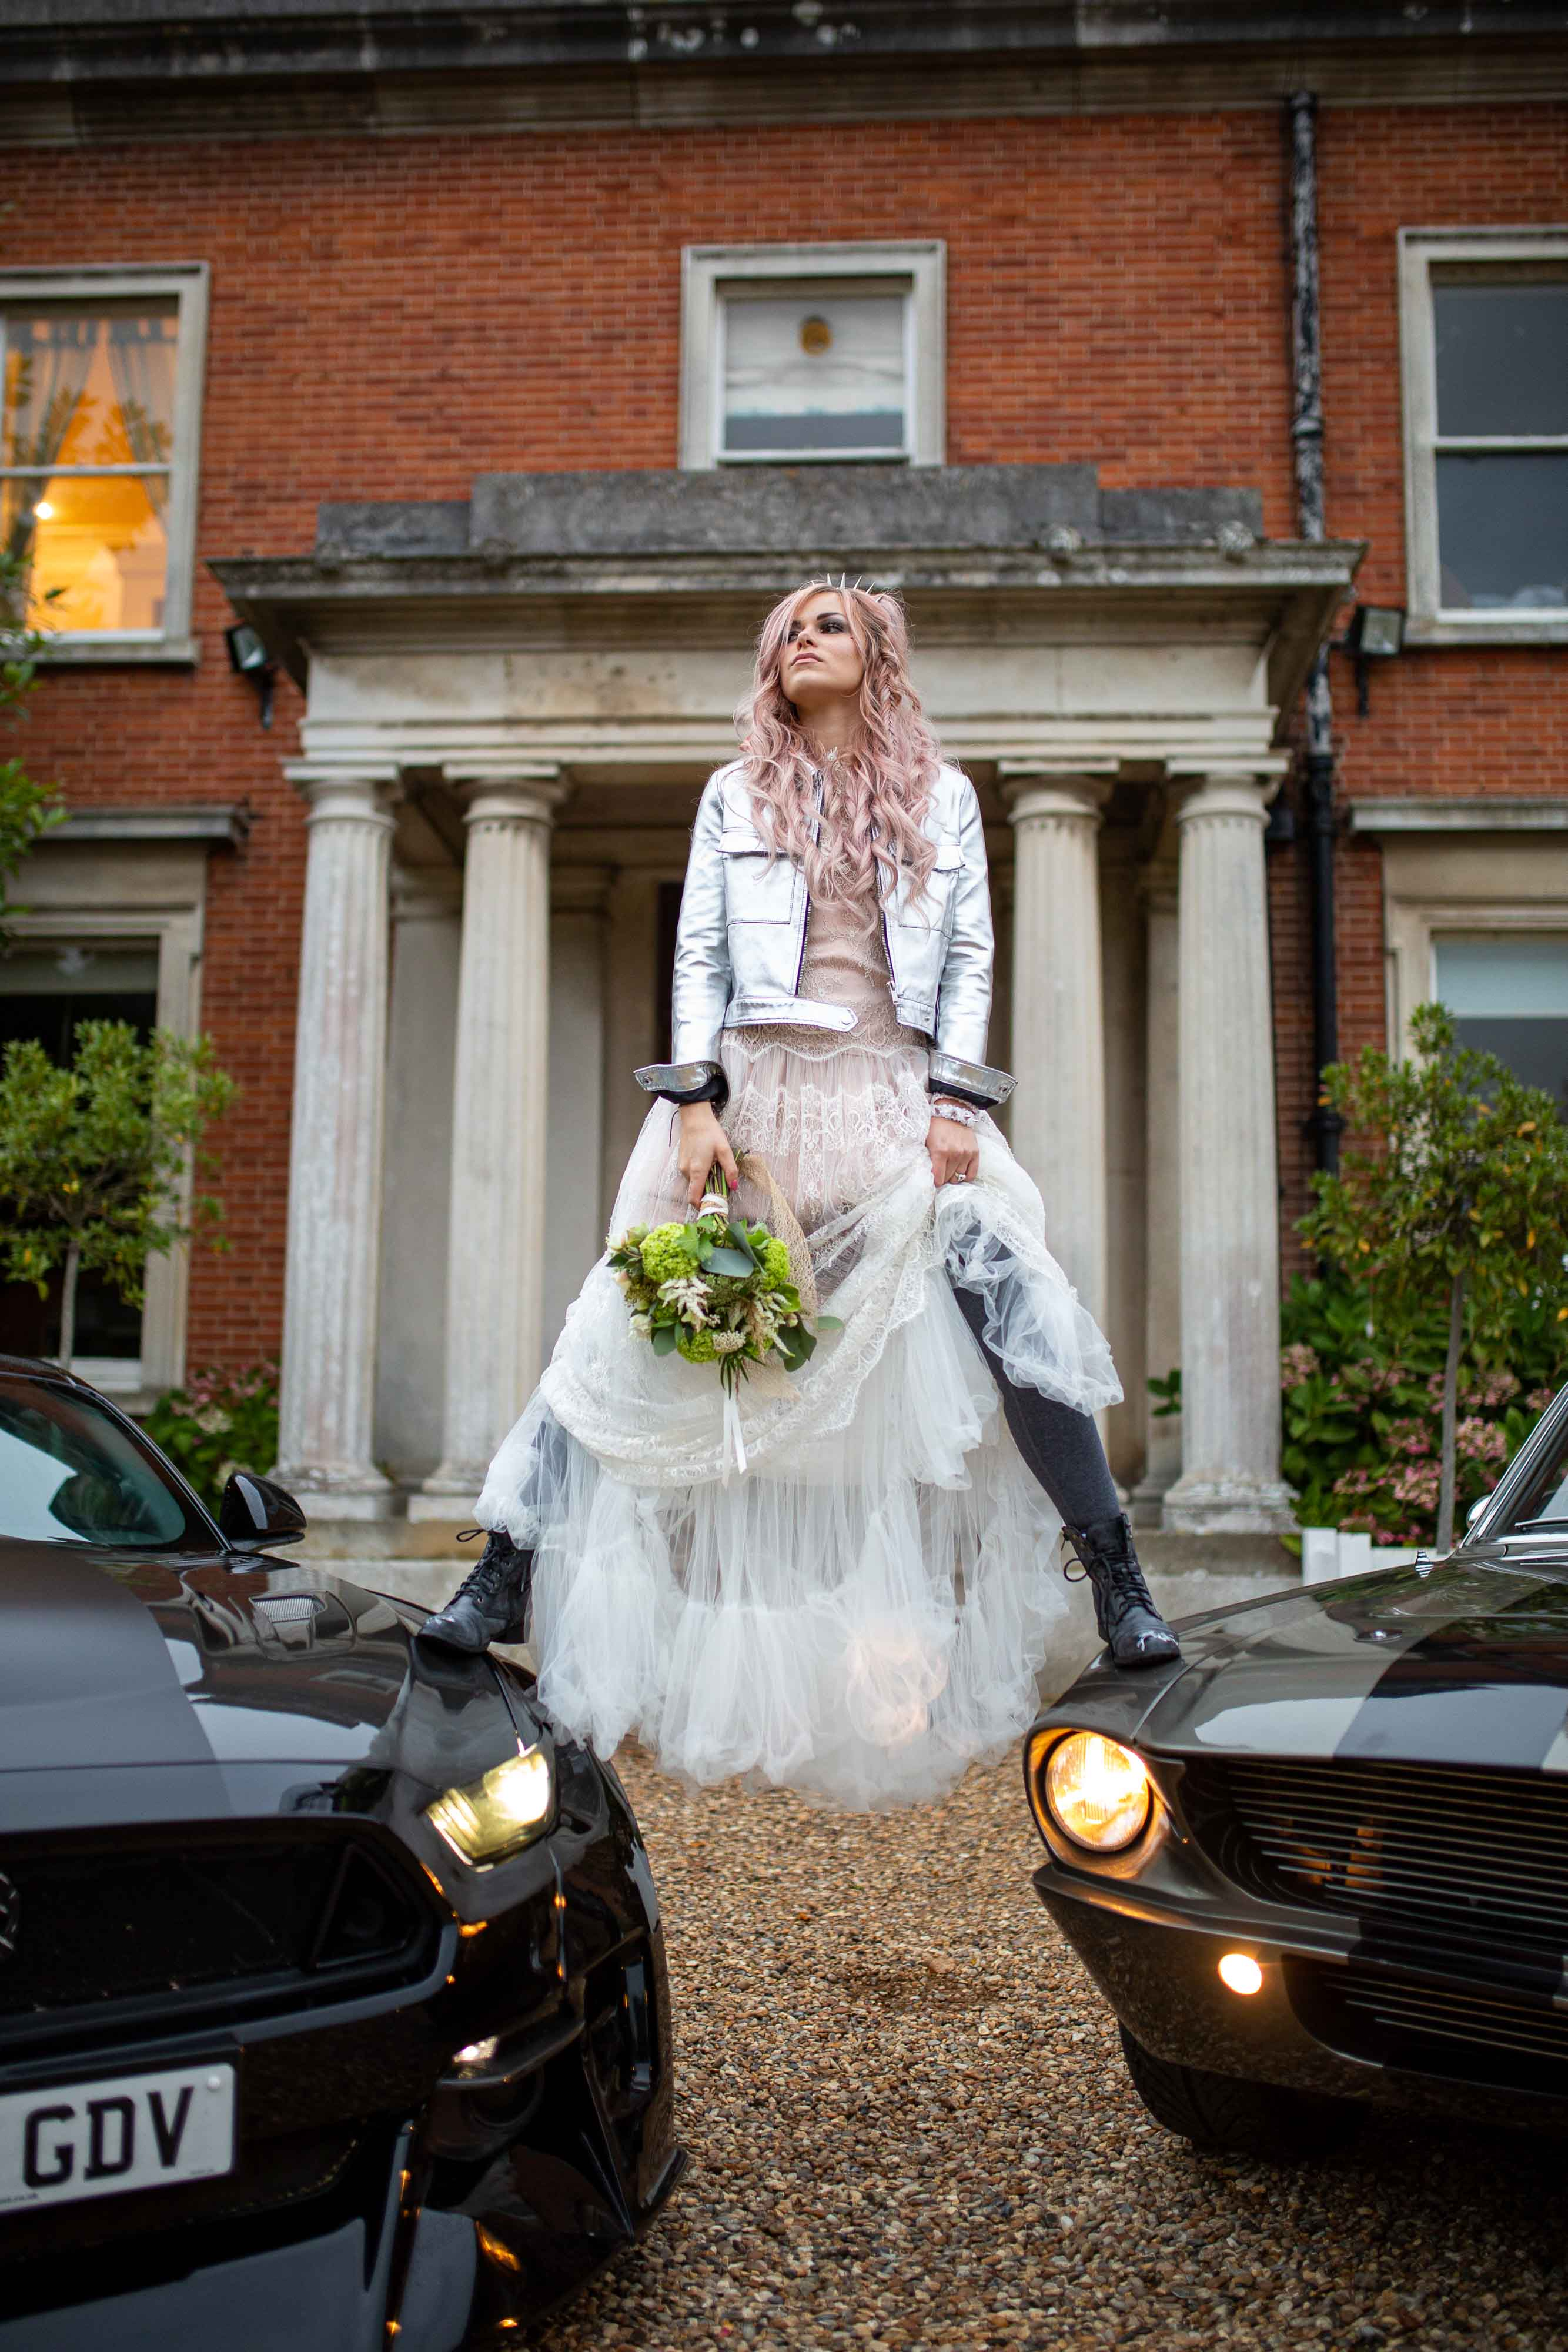 music themed wedding - unique wedding looks inspired by music icons - edgy wedding - rock and roll wedding - grunge wedding - courtney love style- bride standing on cars